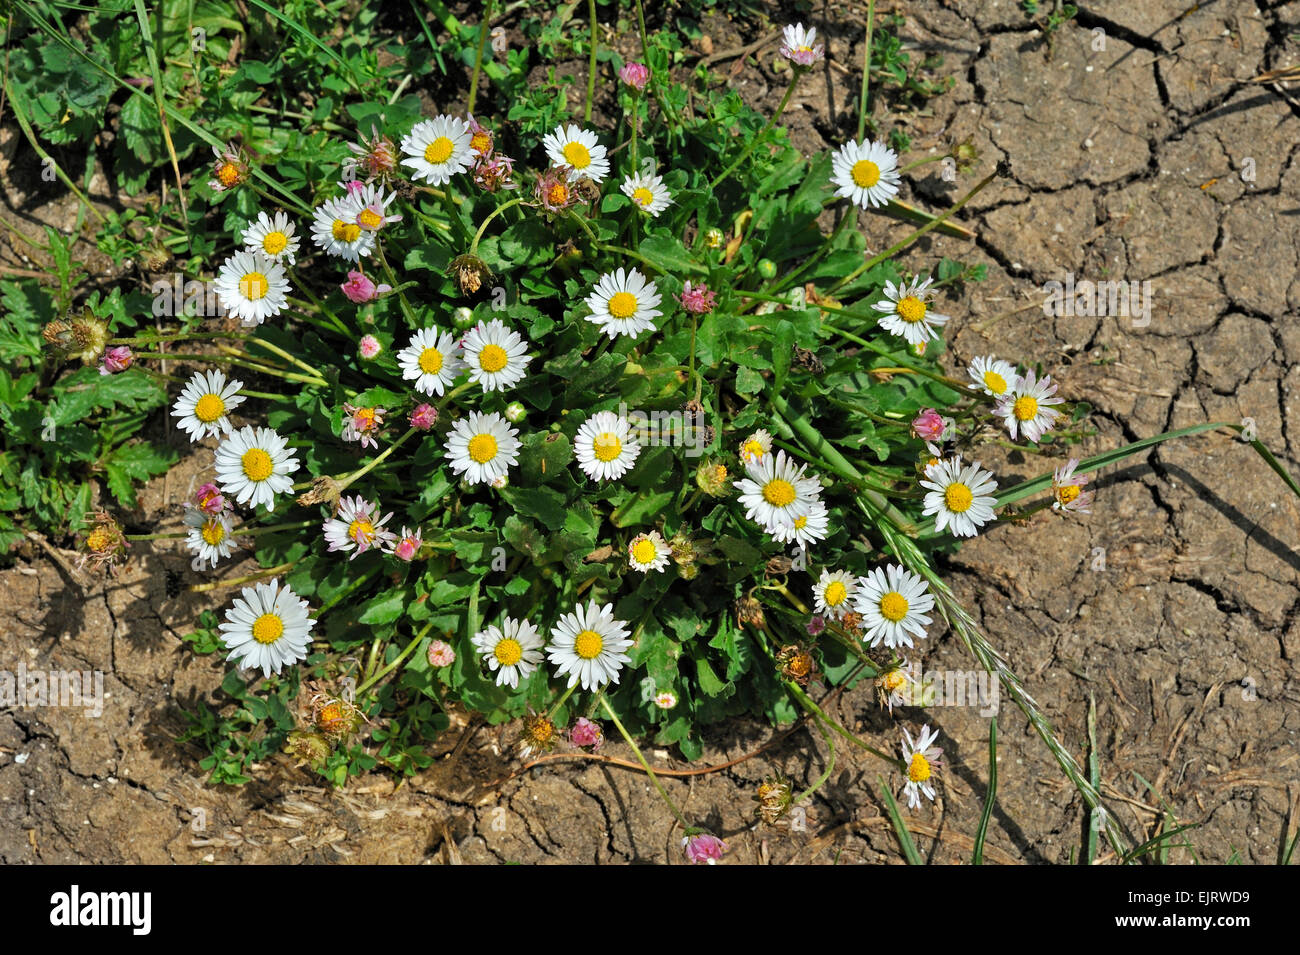 Common daisy / Lawn daisies / English daisy (Bellis perennis) in flower - Stock Image